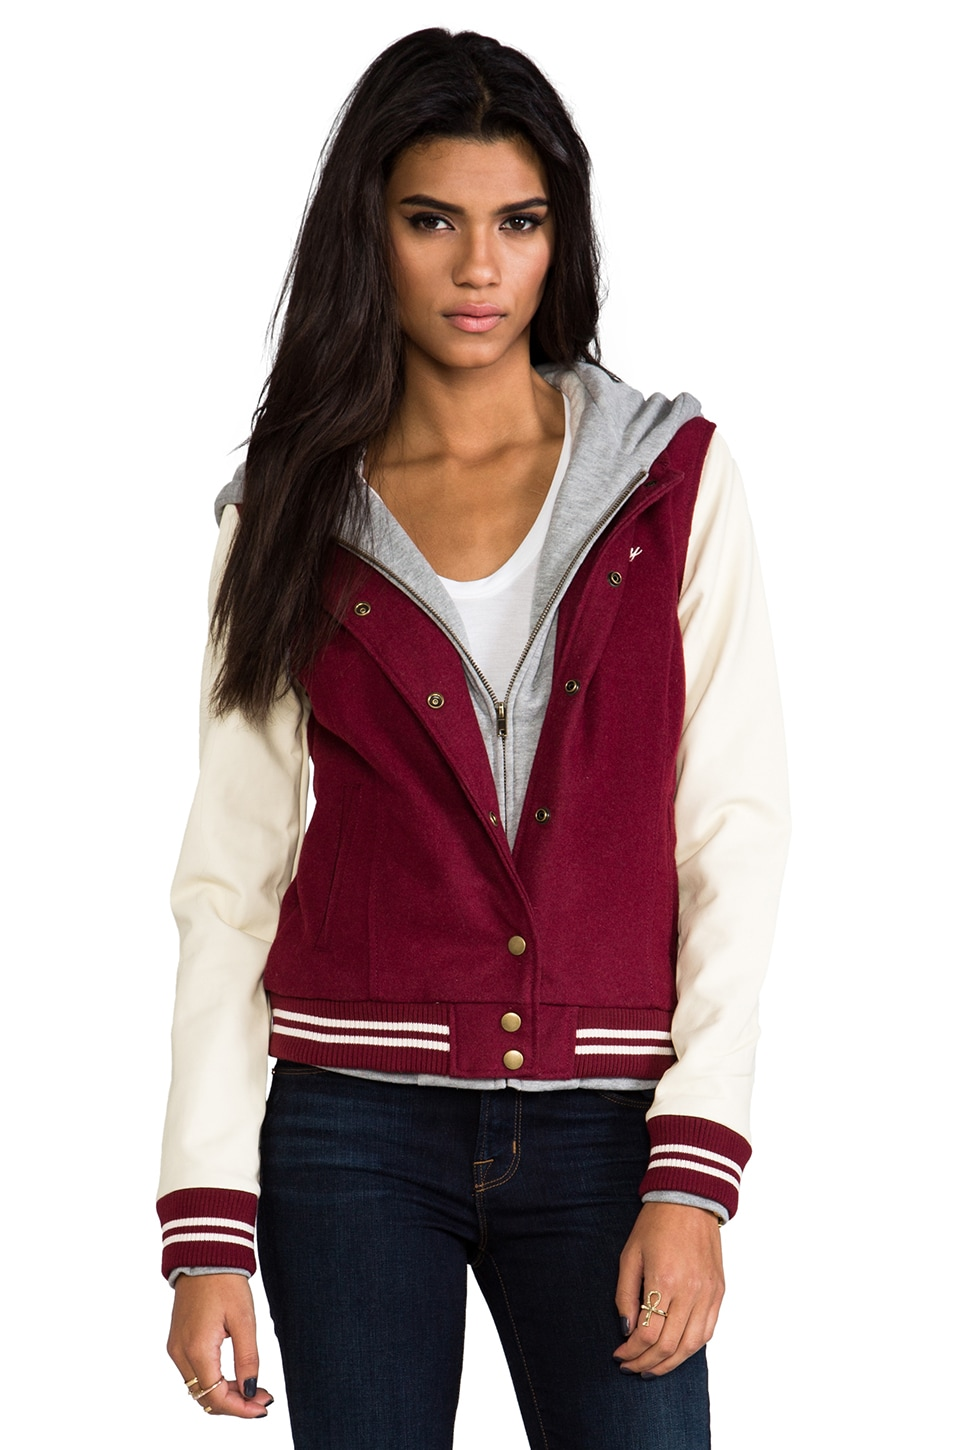 Obey Varsity Jacket in Burgundy & Cream